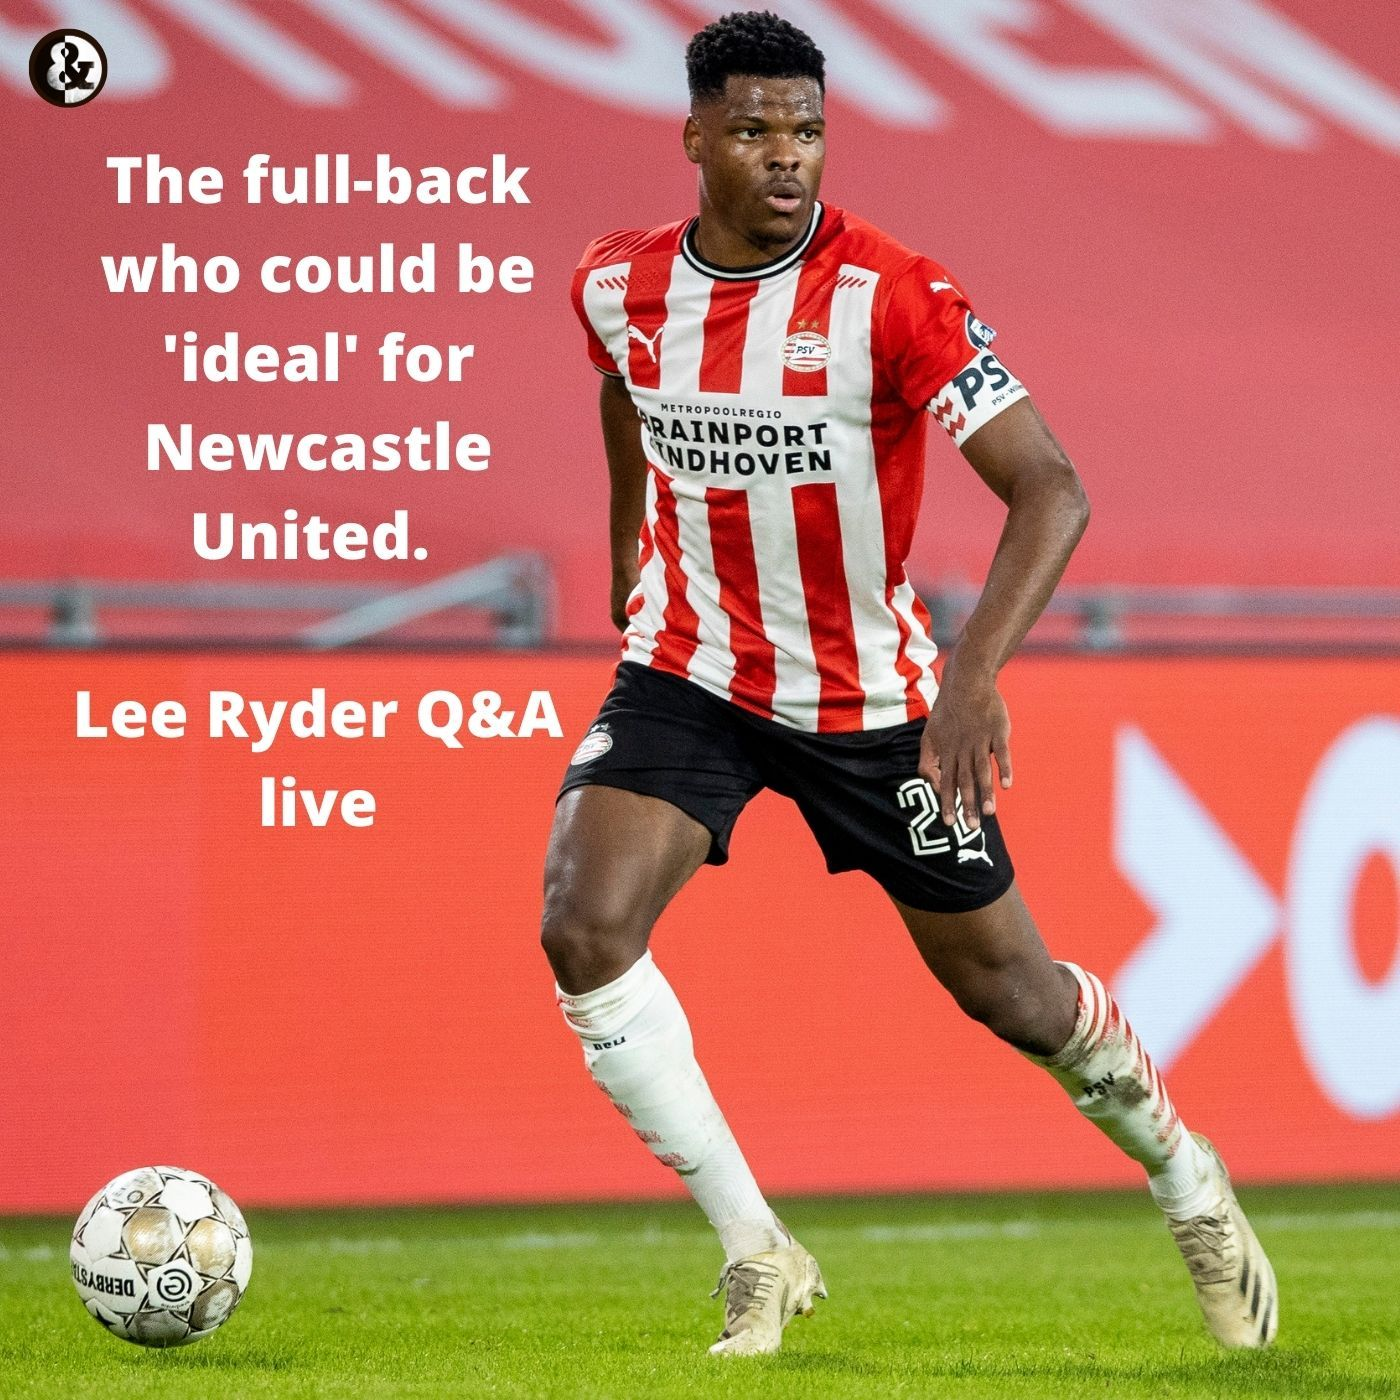 The Dutch full-back who is catching the eye of Newcastle United - Lee Ryder Q&A